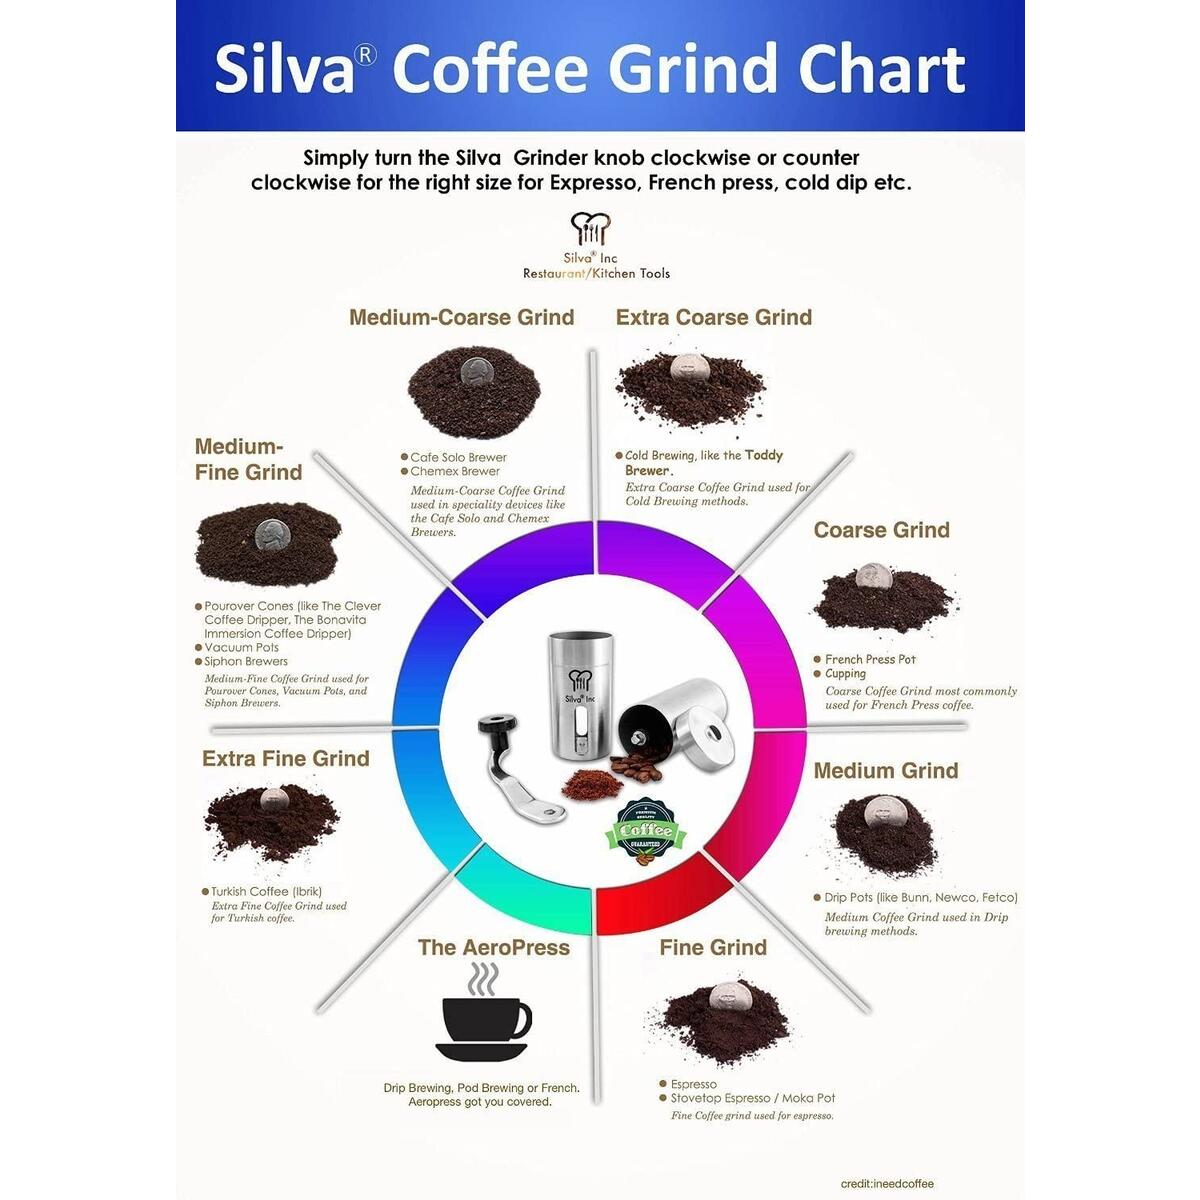 Silva Manual Coffee Grinder - Hand Coffee Bean Grinder | Ceramic Burr Coffee Mill for French Press, Espresso, Turkish, Aeropress - Brushed Stainless Steel - Bonus Scoop